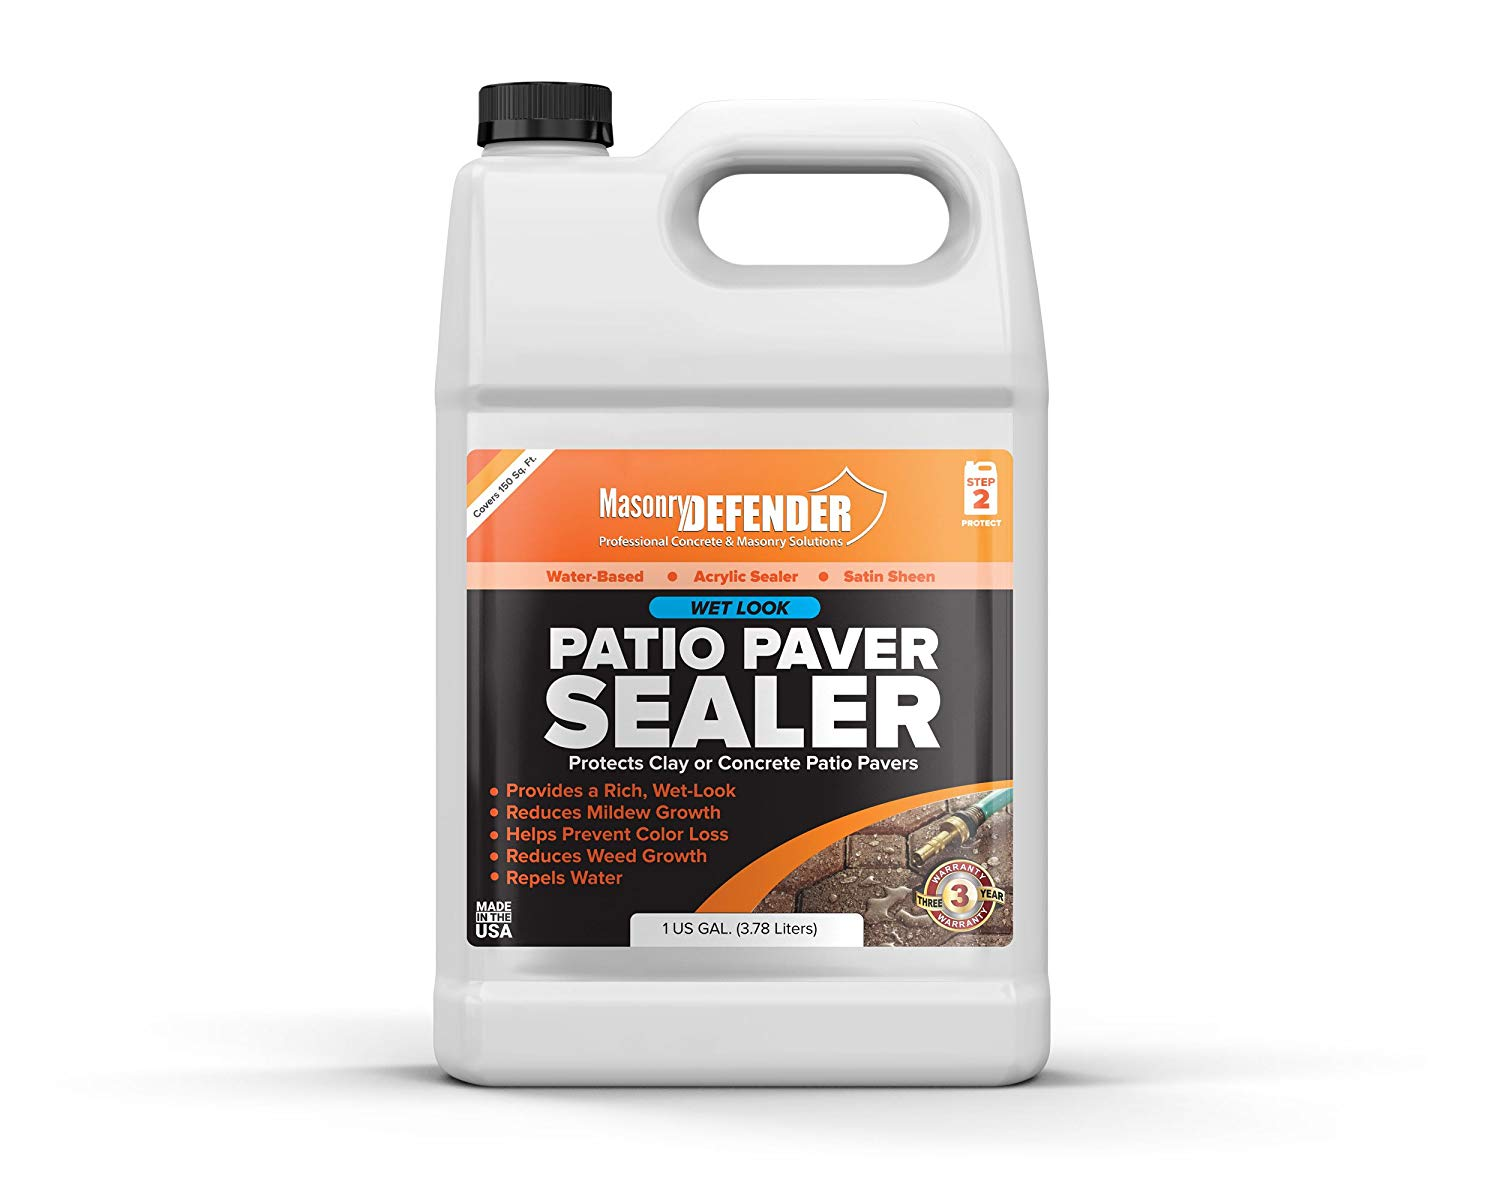 Wet Look Patio Paver Sealer, 1 Gal - Clear Water-Based Sealant for Natural Stone Surfaces